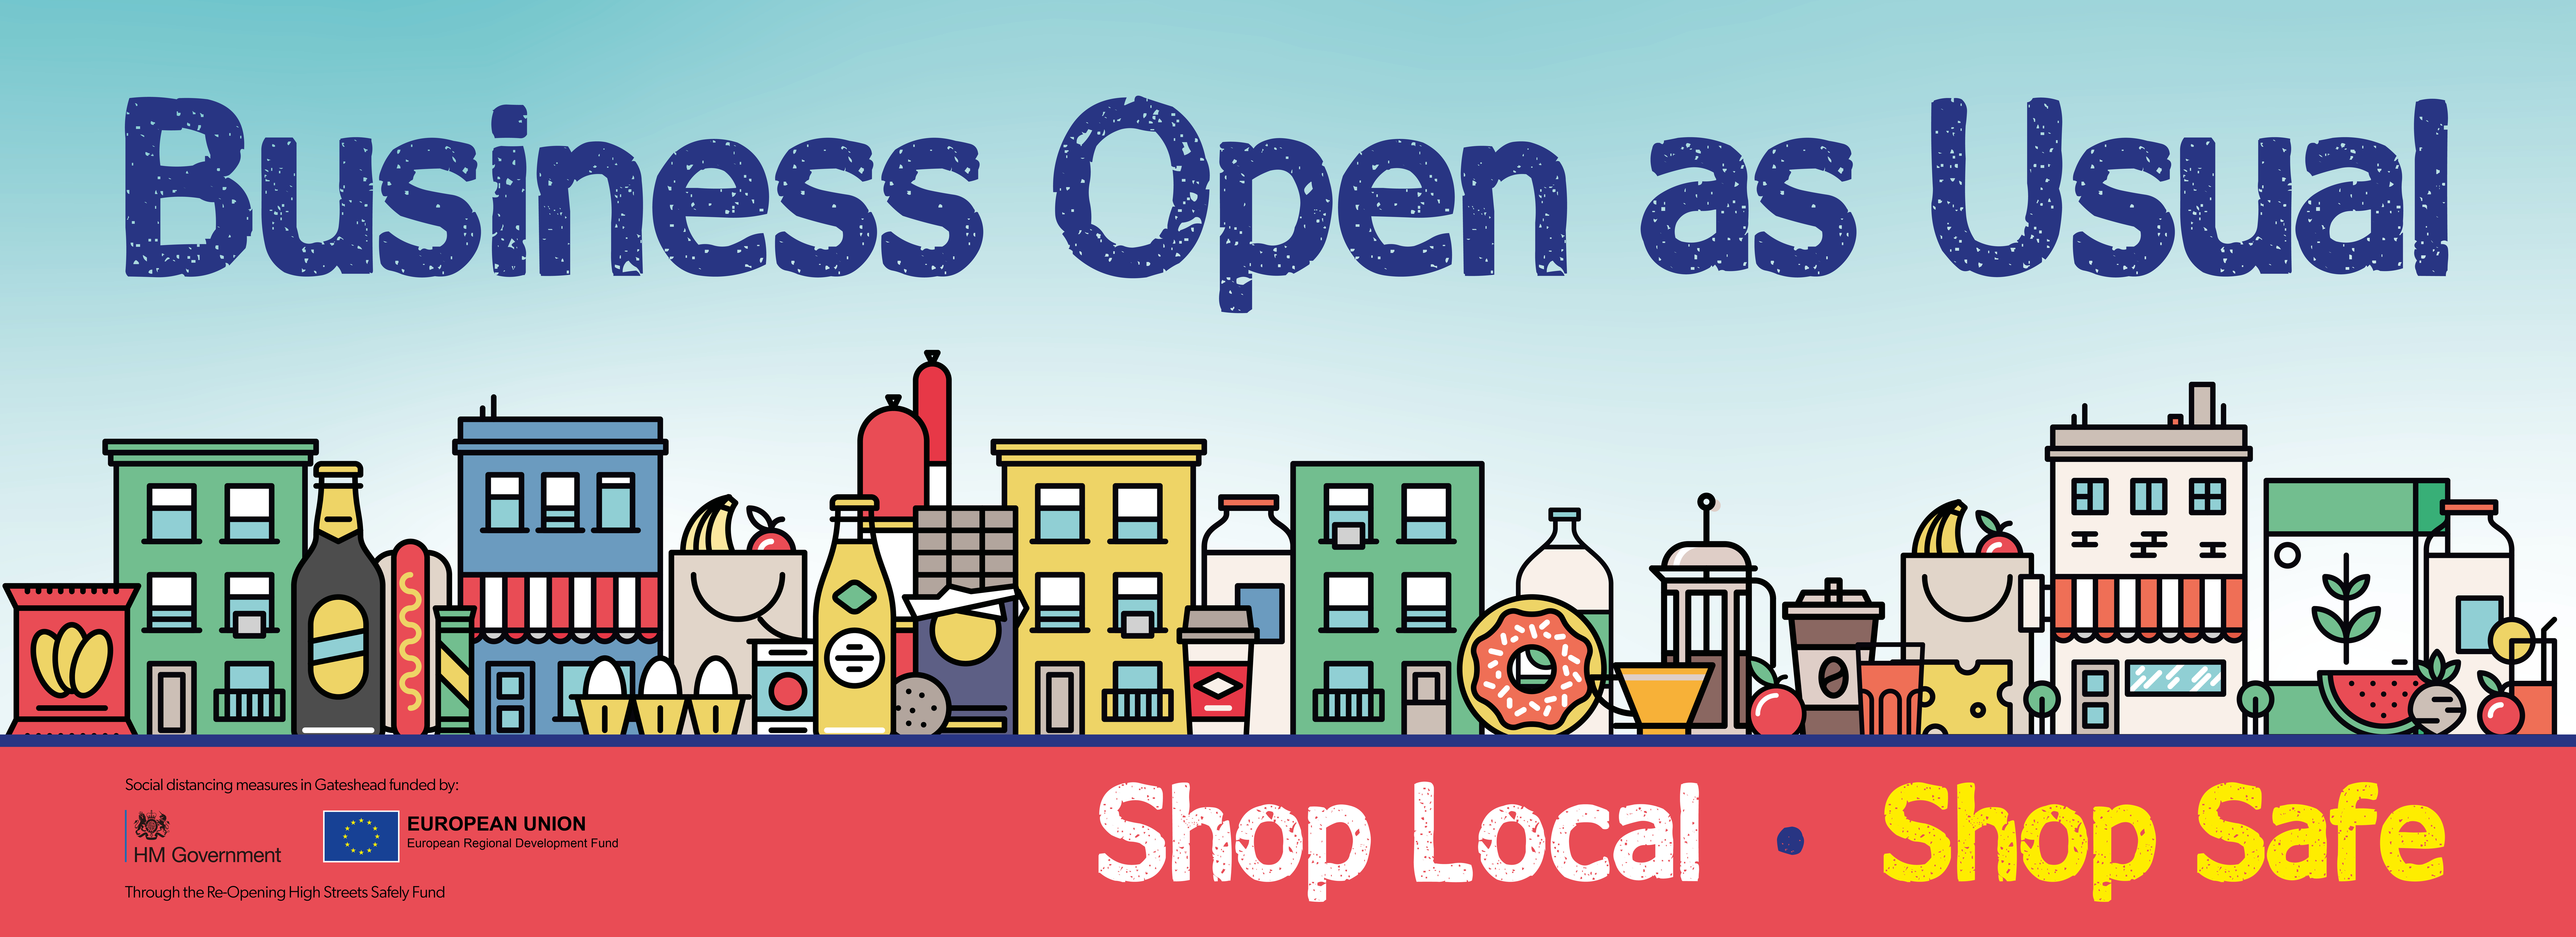 Shop local and shop safely